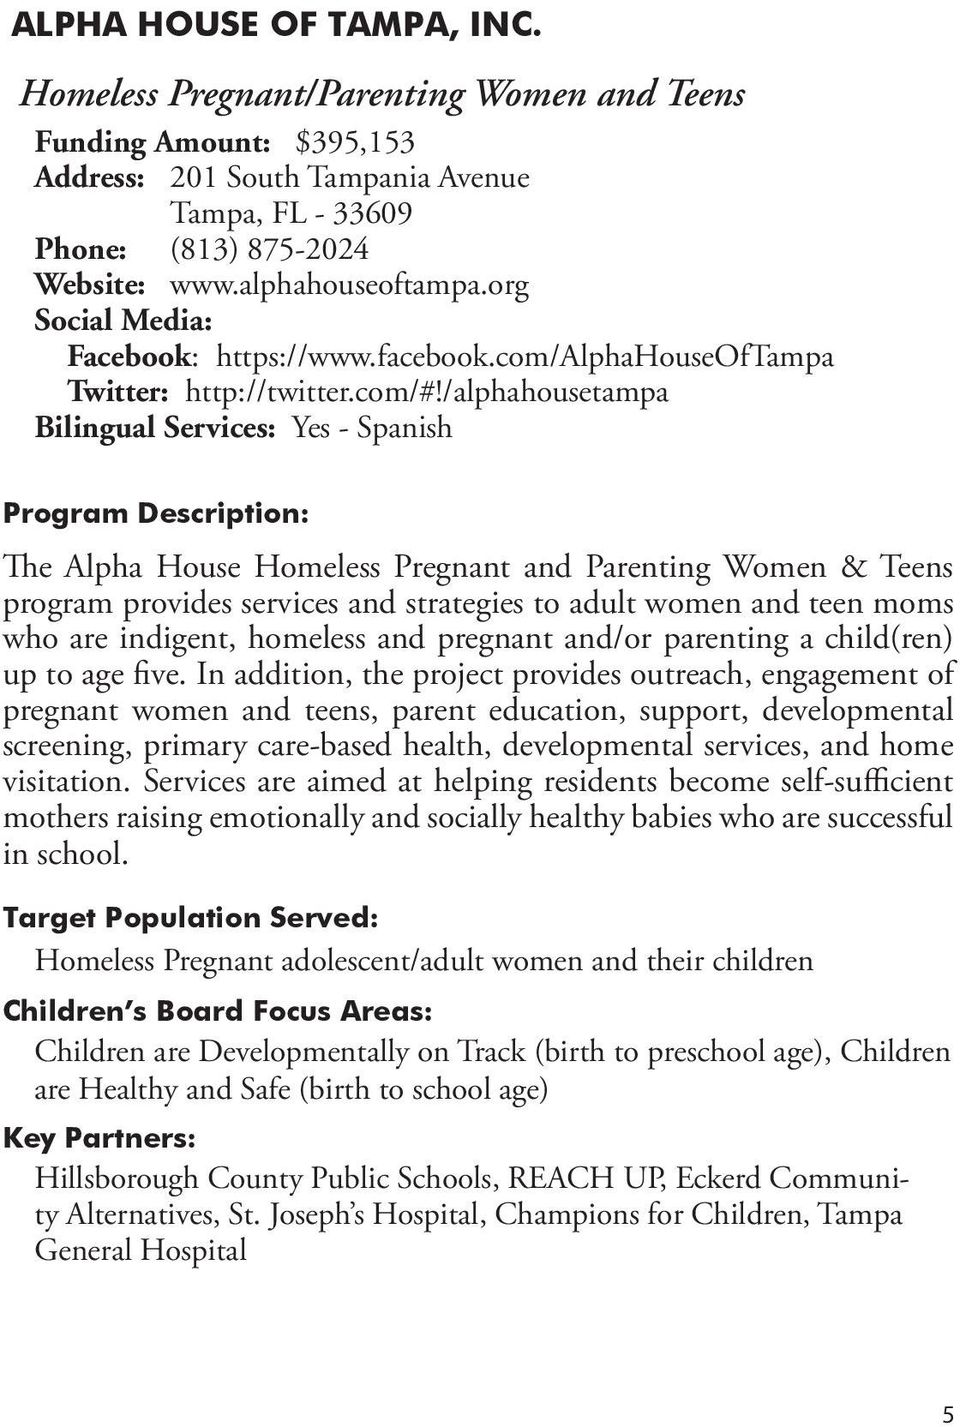 /alphahousetampa The Alpha House Homeless Pregnant and Parenting Women & Teens program provides services and strategies to adult women and teen moms who are indigent, homeless and pregnant and/or